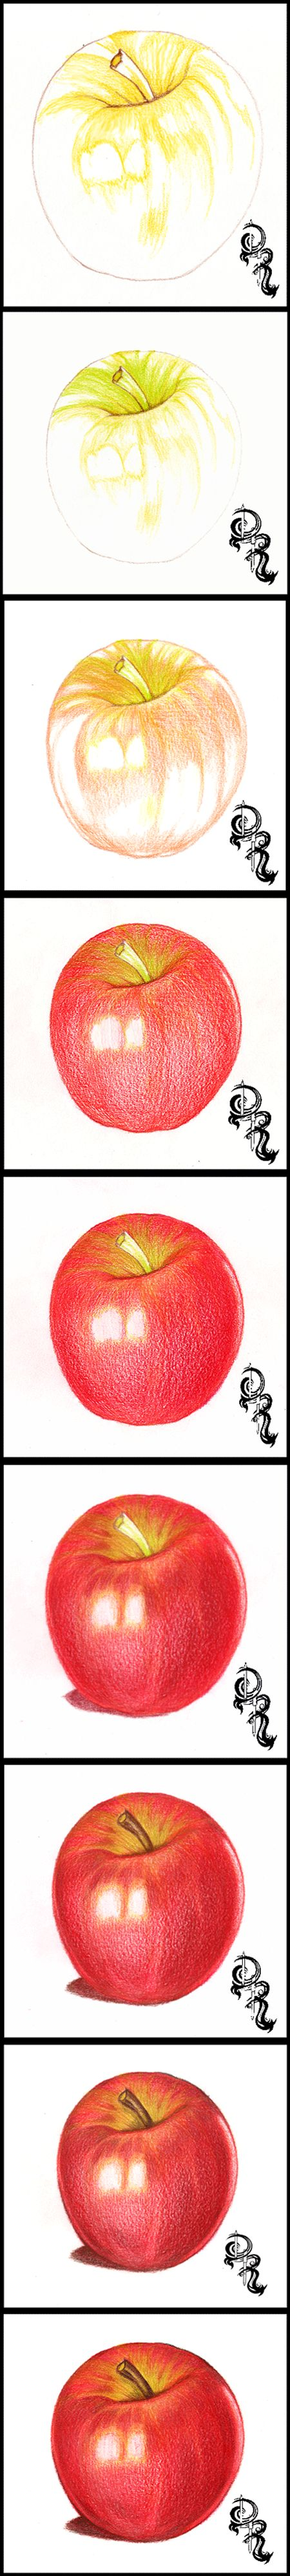 How to Draw an Apple with Colored Pencils.   A step-by-step image of a colored pencil #artlesson by Derrick Rathgeber. Click the image for full details instructions on my blog page.   http://derricktheartist.blogspot.com/2013/08/how-to-color-delicious-pink-lady-apple.html